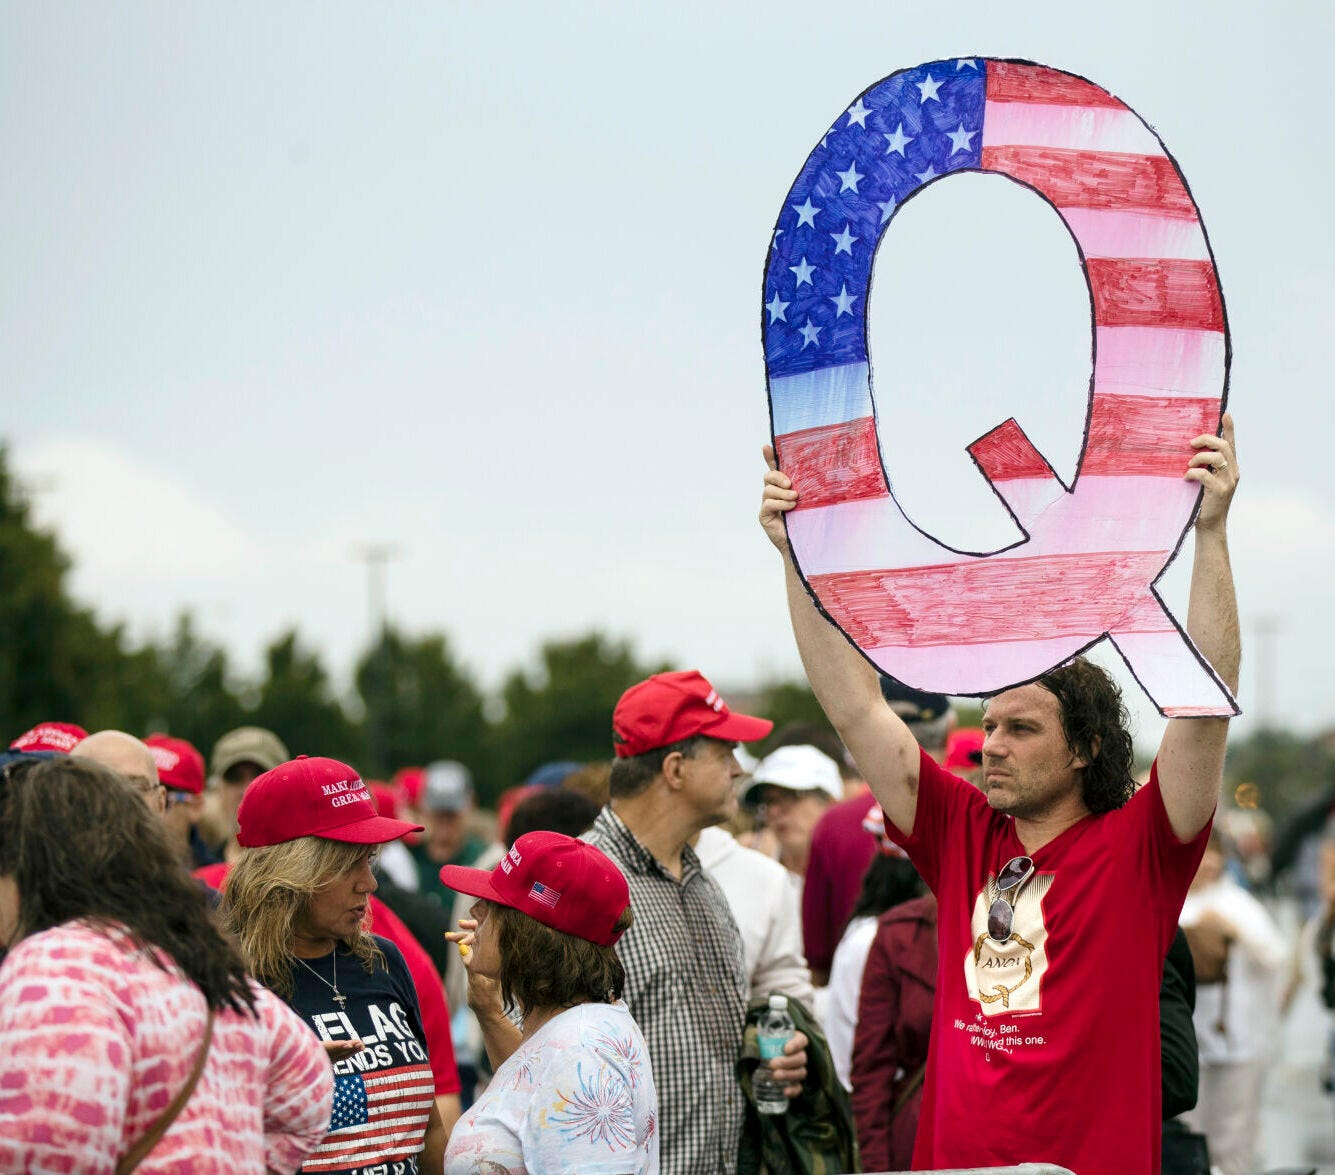 How would you describe QAnon?